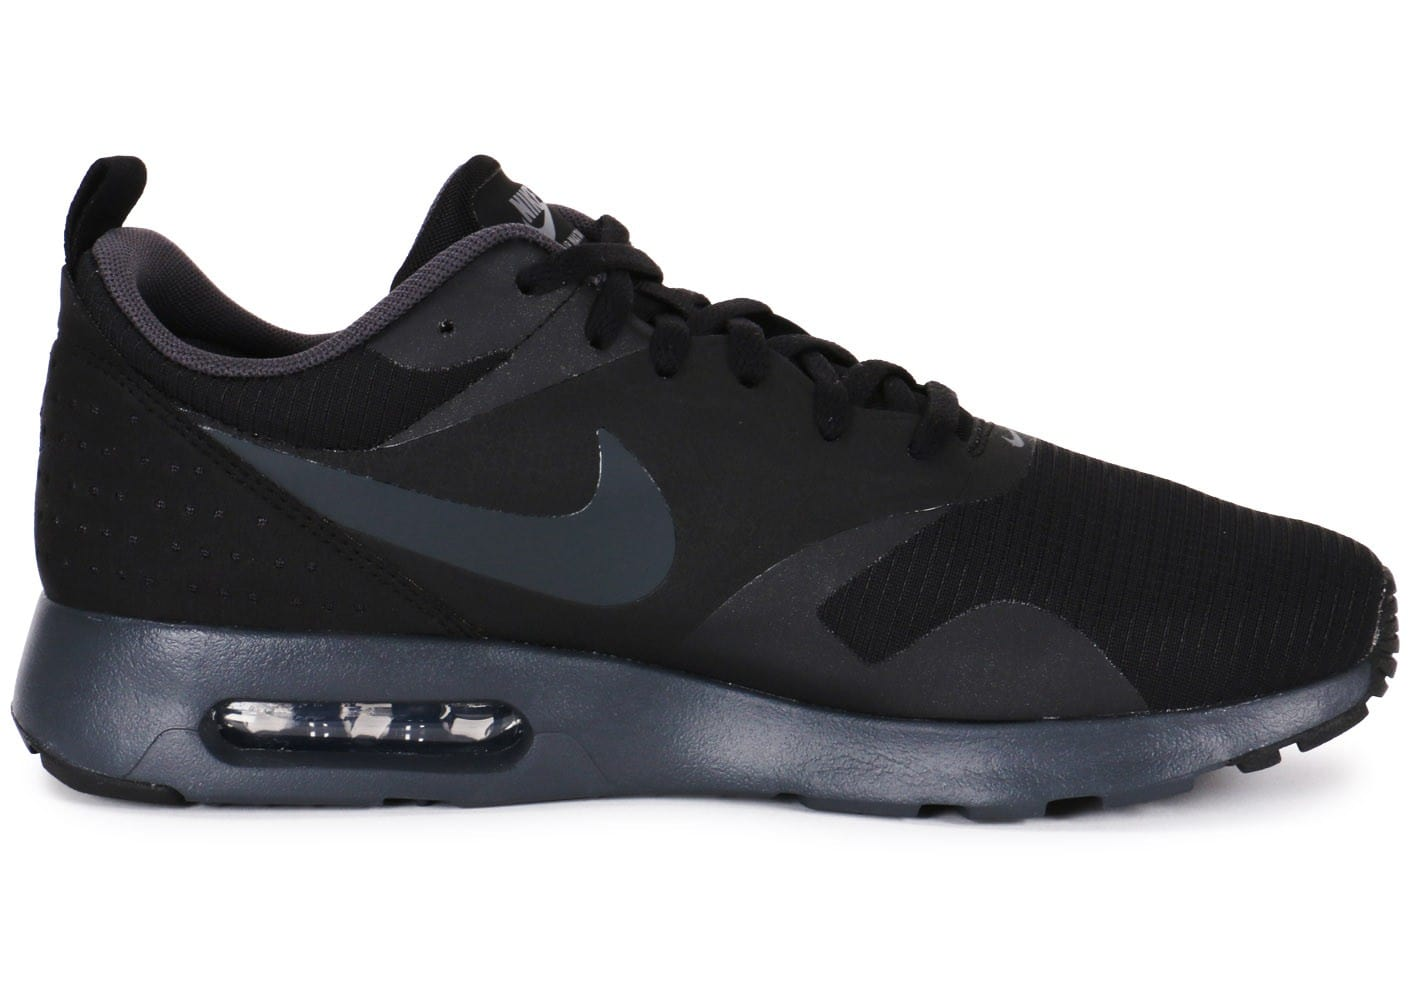 brand new c8546 463bf Nike Air Max Tavas Noire - Chaussures Baskets homme - Chausport